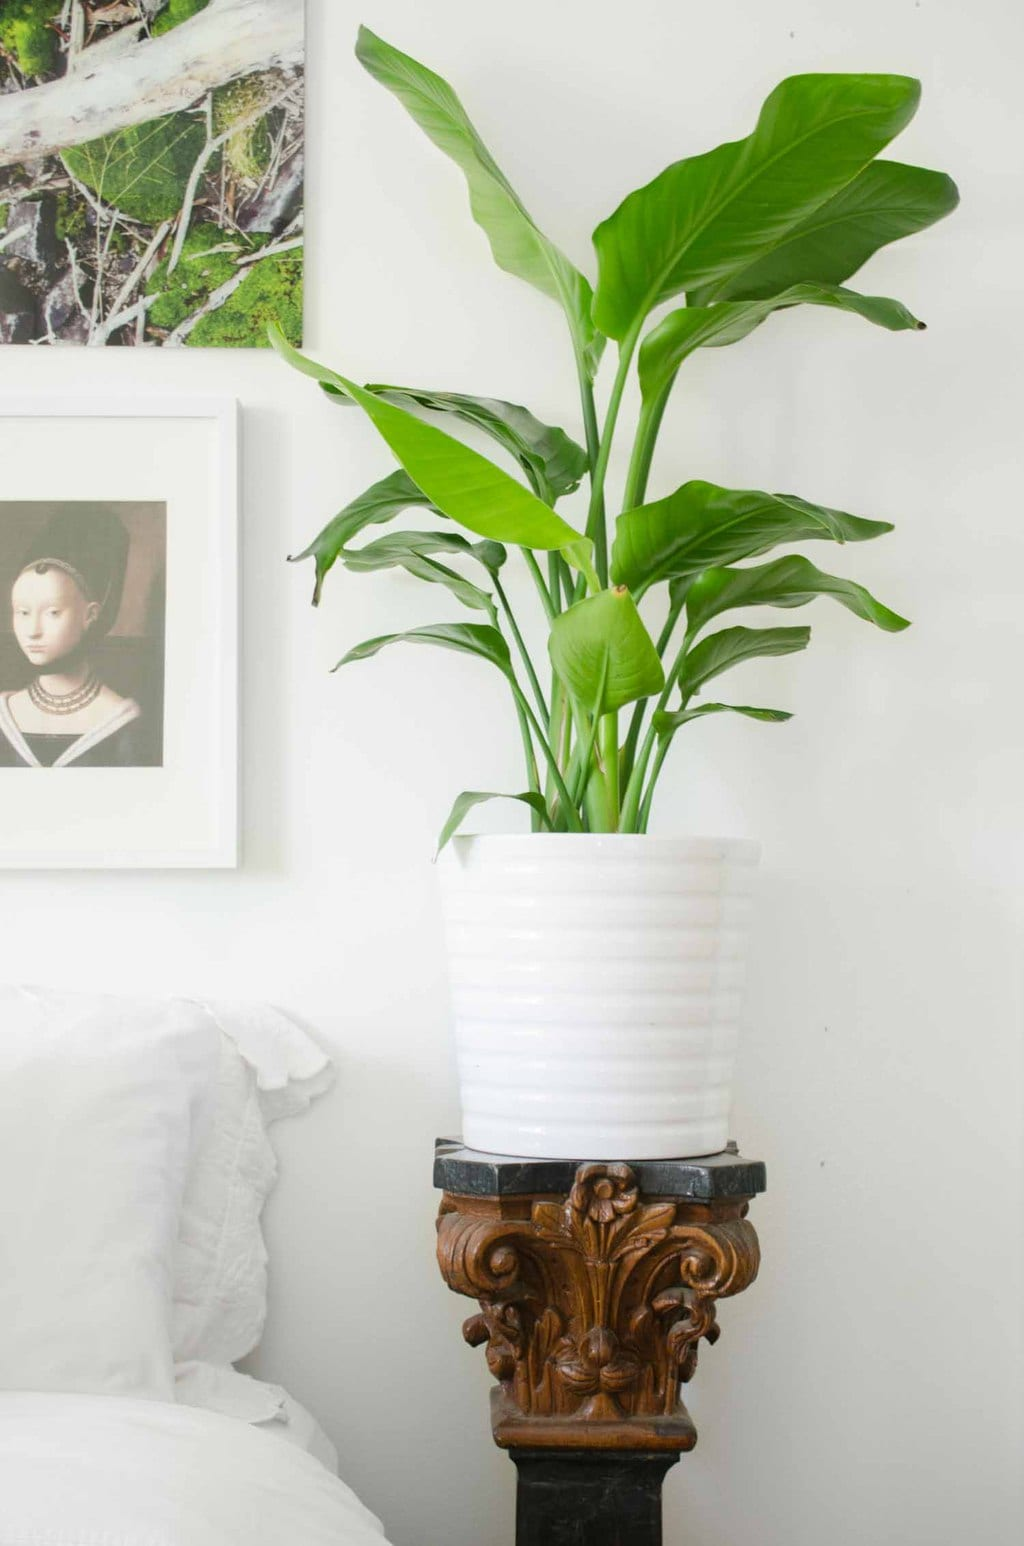 Eclectic bedroom with plant on column via @thouswellblog